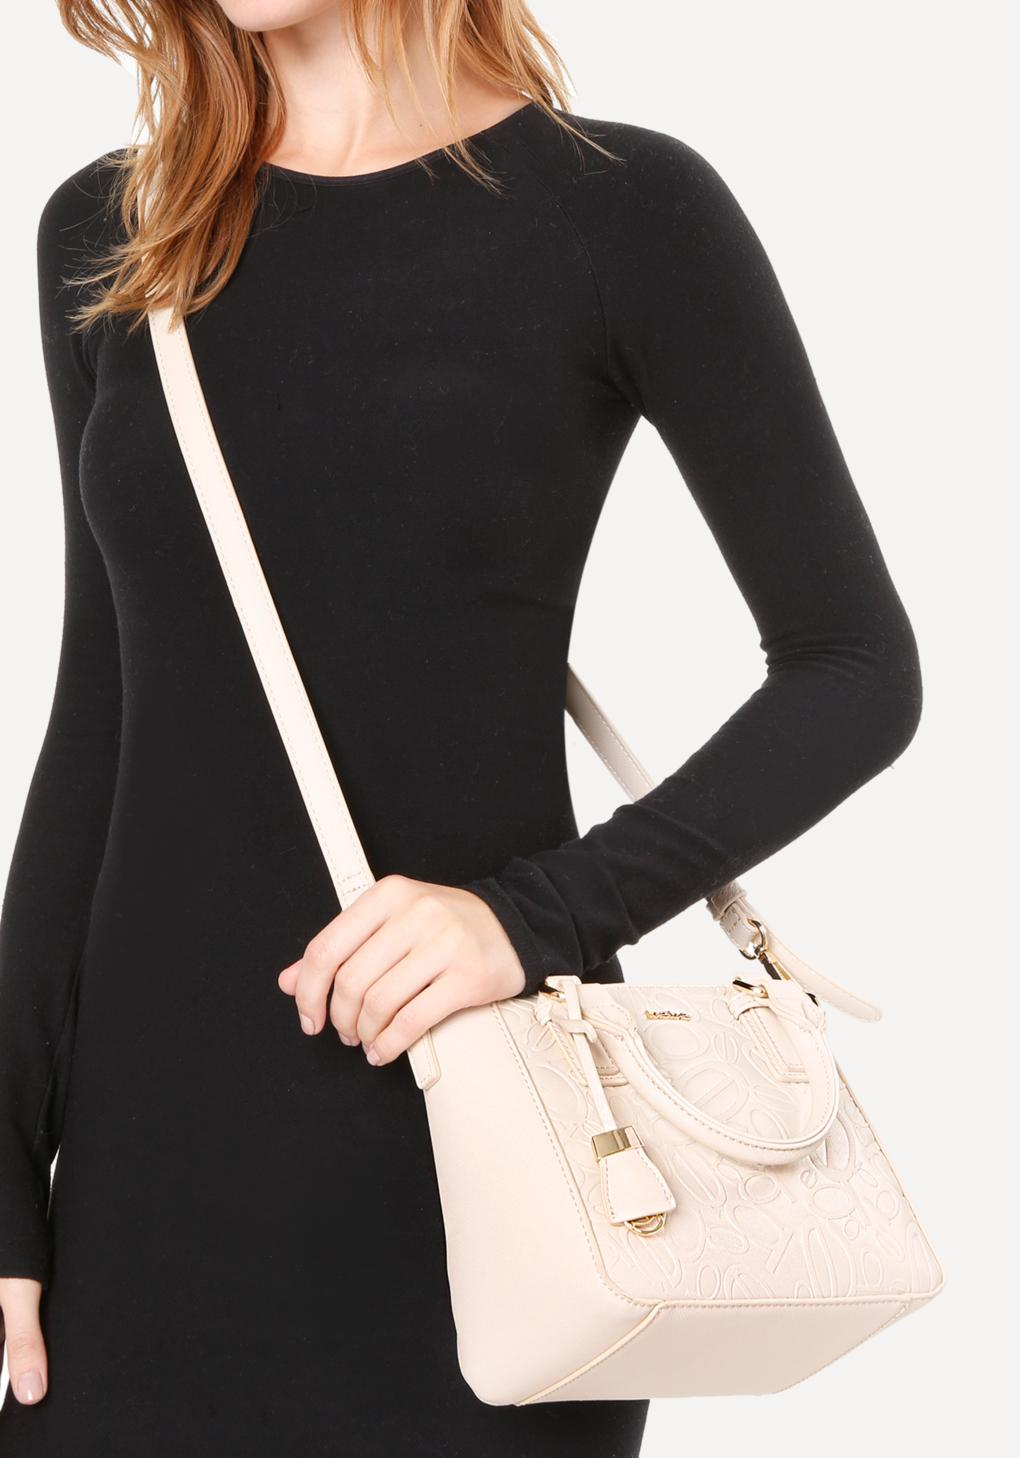 Bebe Tossed Logo Crossbody Bag in Natural